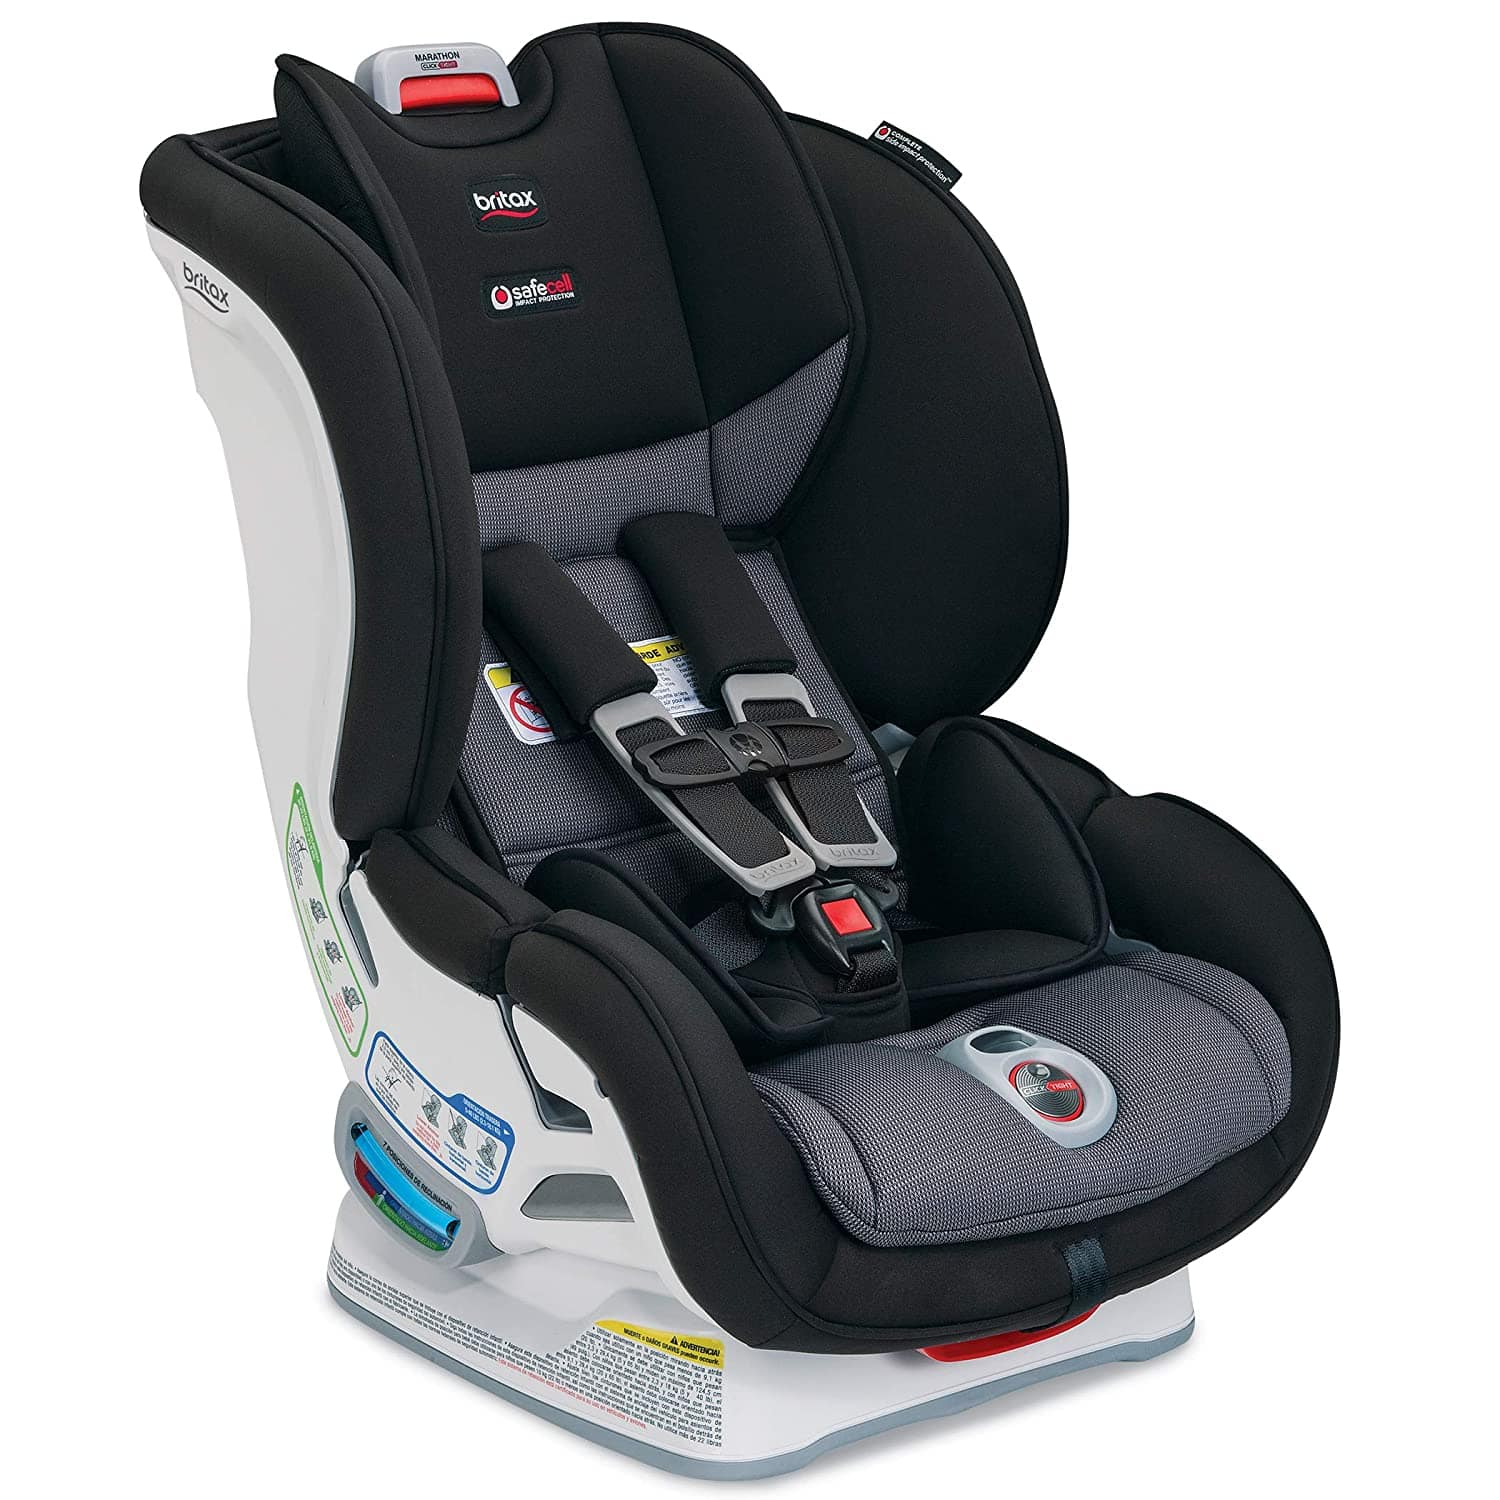 Britax Marathon ClickTight Convertible Car Seat $197